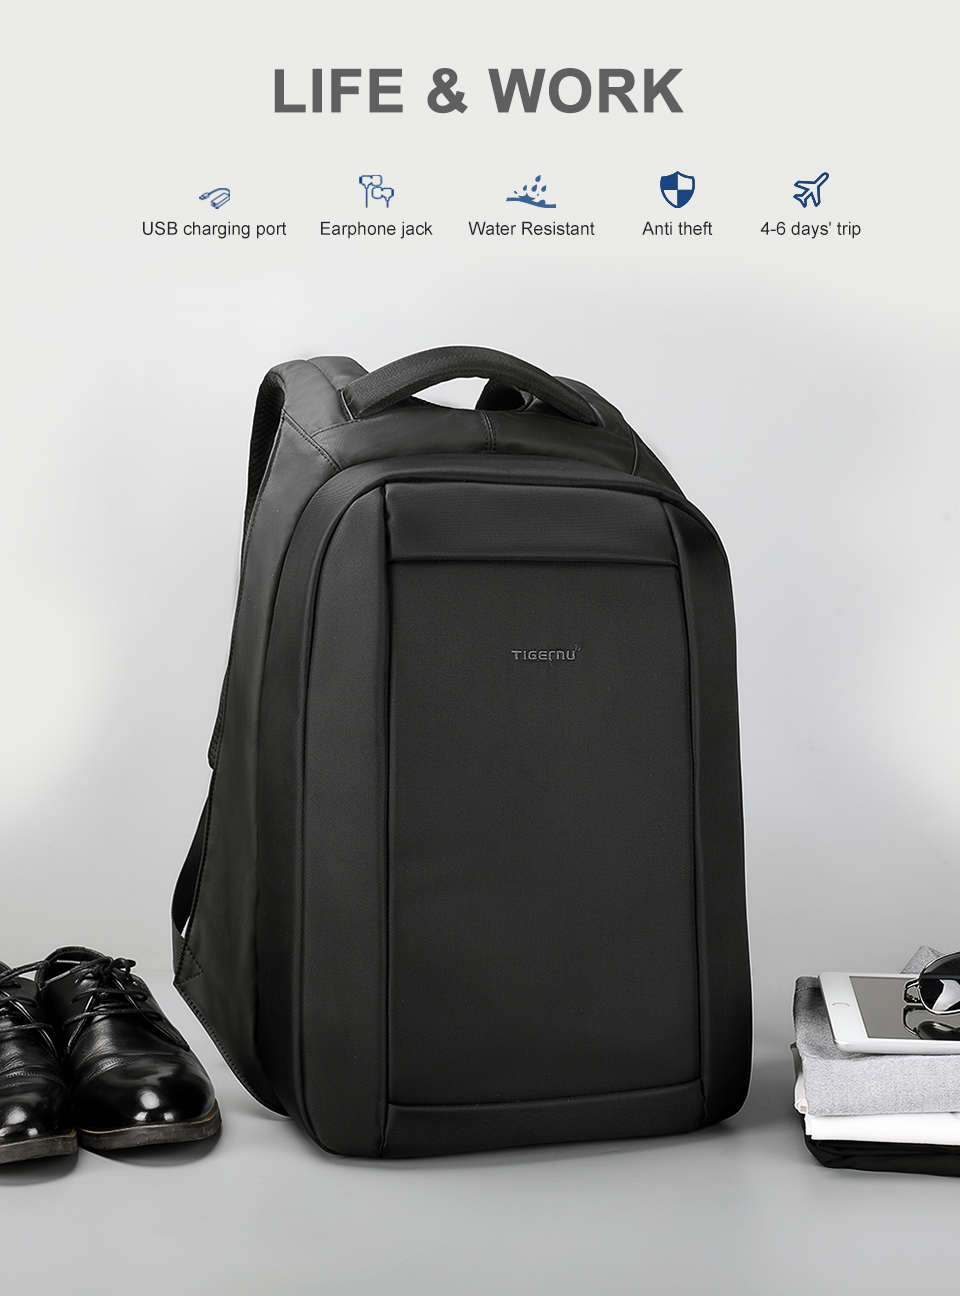 1.anti theft travel backpack